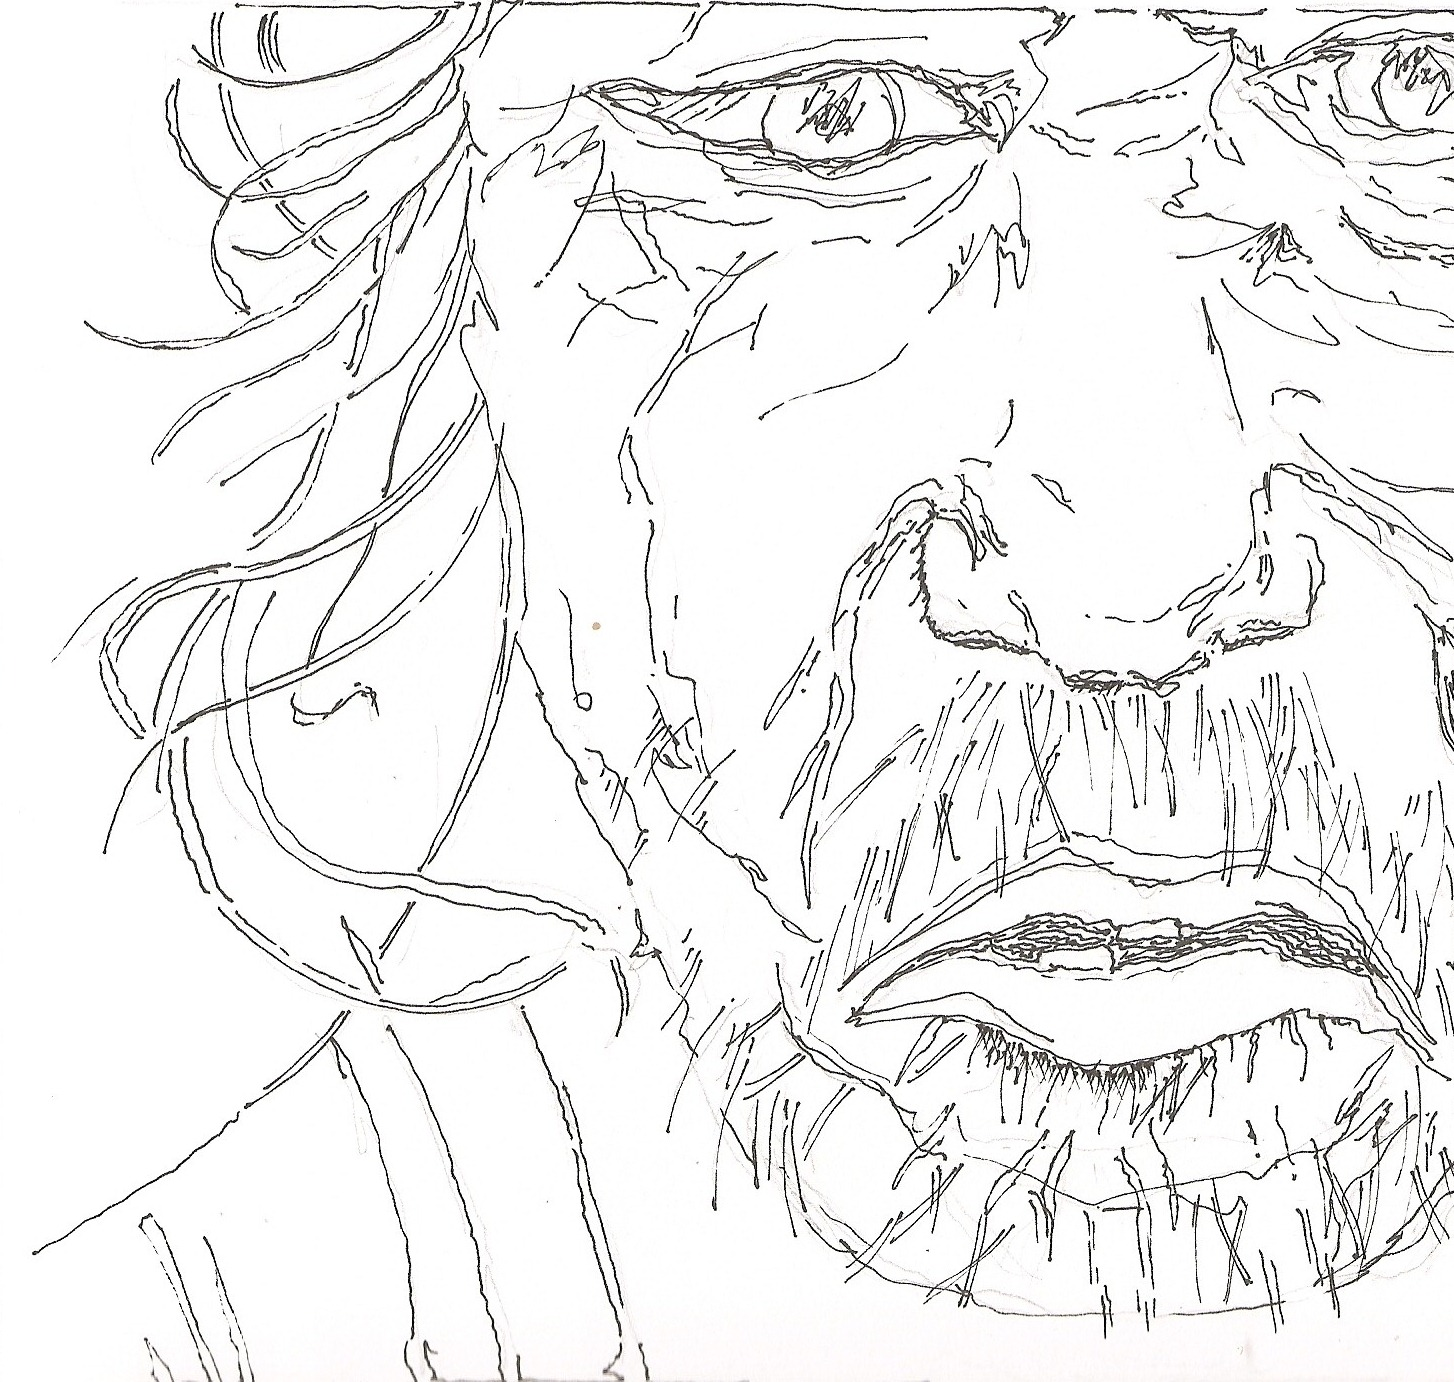 1454x1382 Line Drawing Of Homeless Man Jots From A Small Apt.